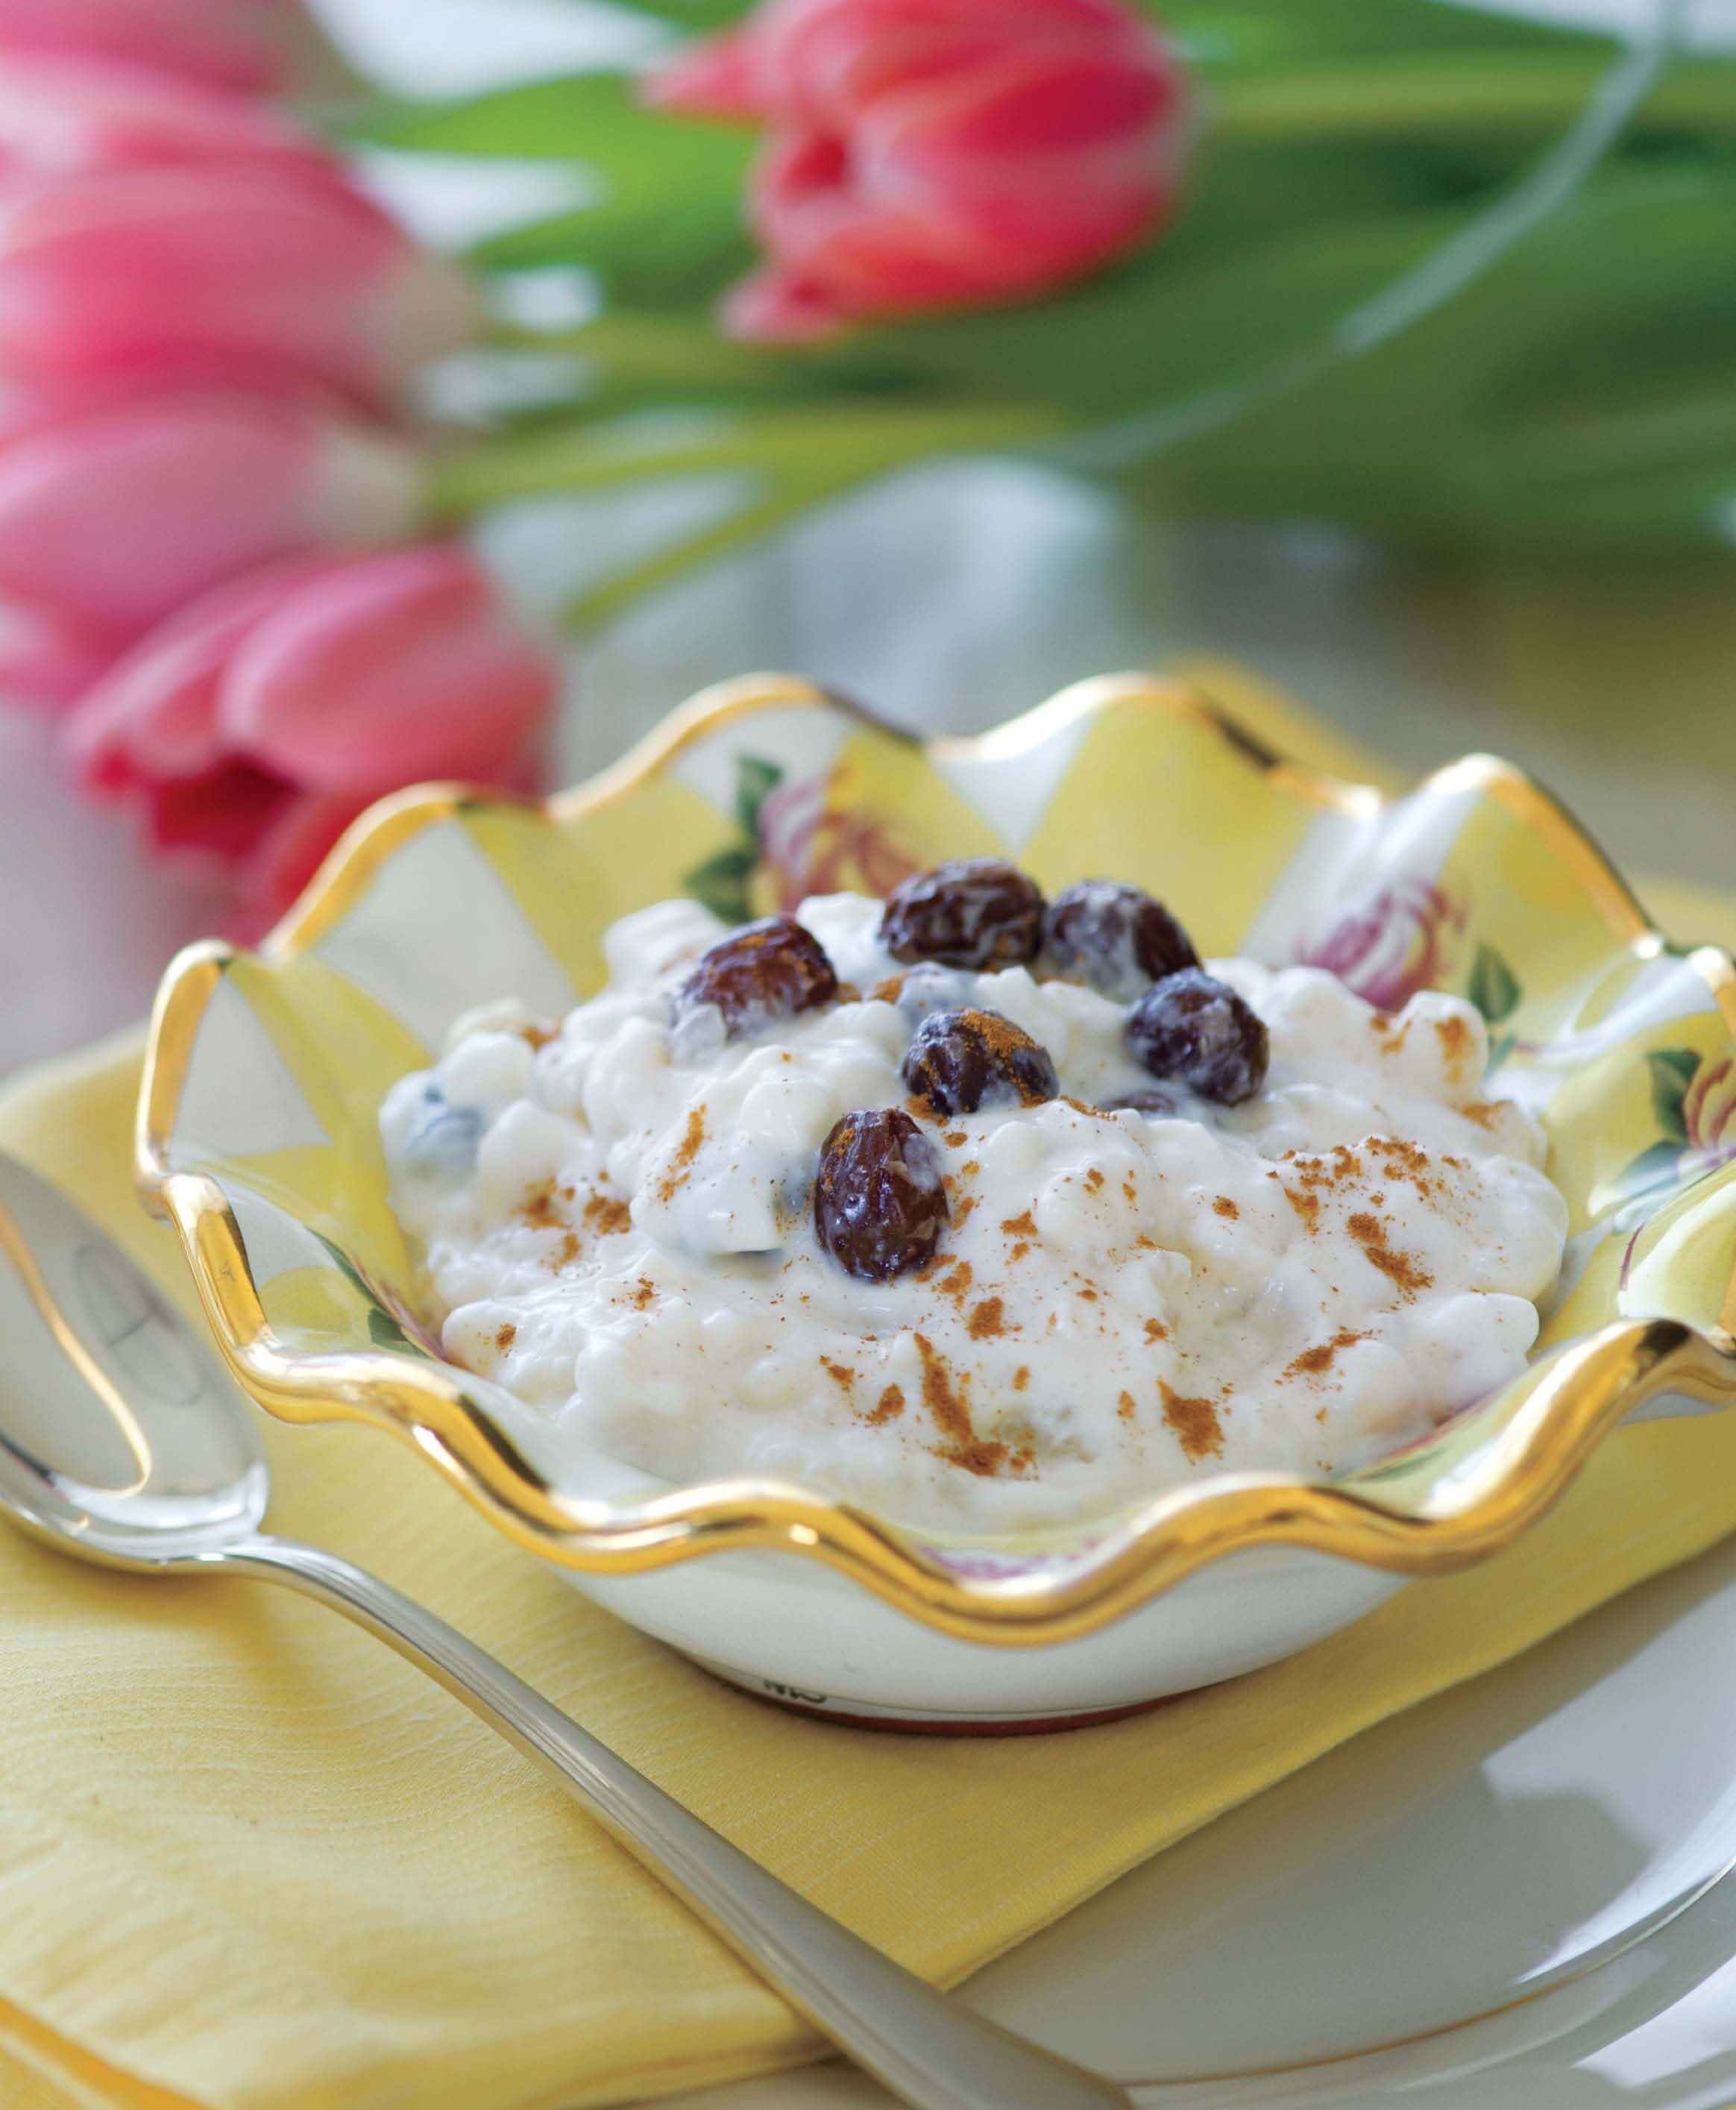 National Rice Pudding Day | Foodimentary - National Food Holidays